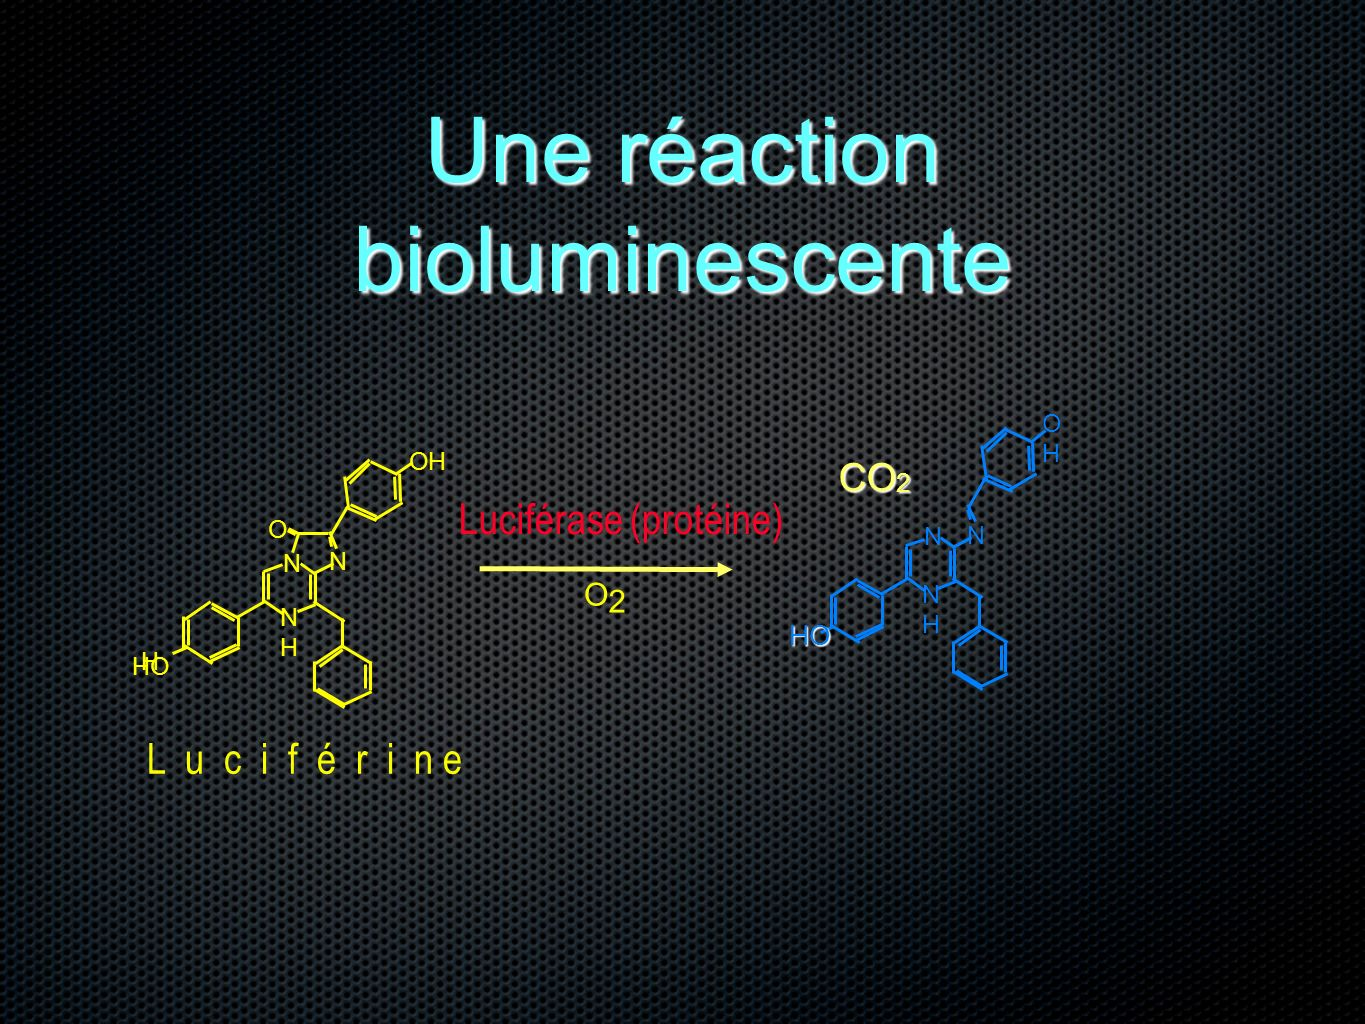 Une réaction bioluminescente